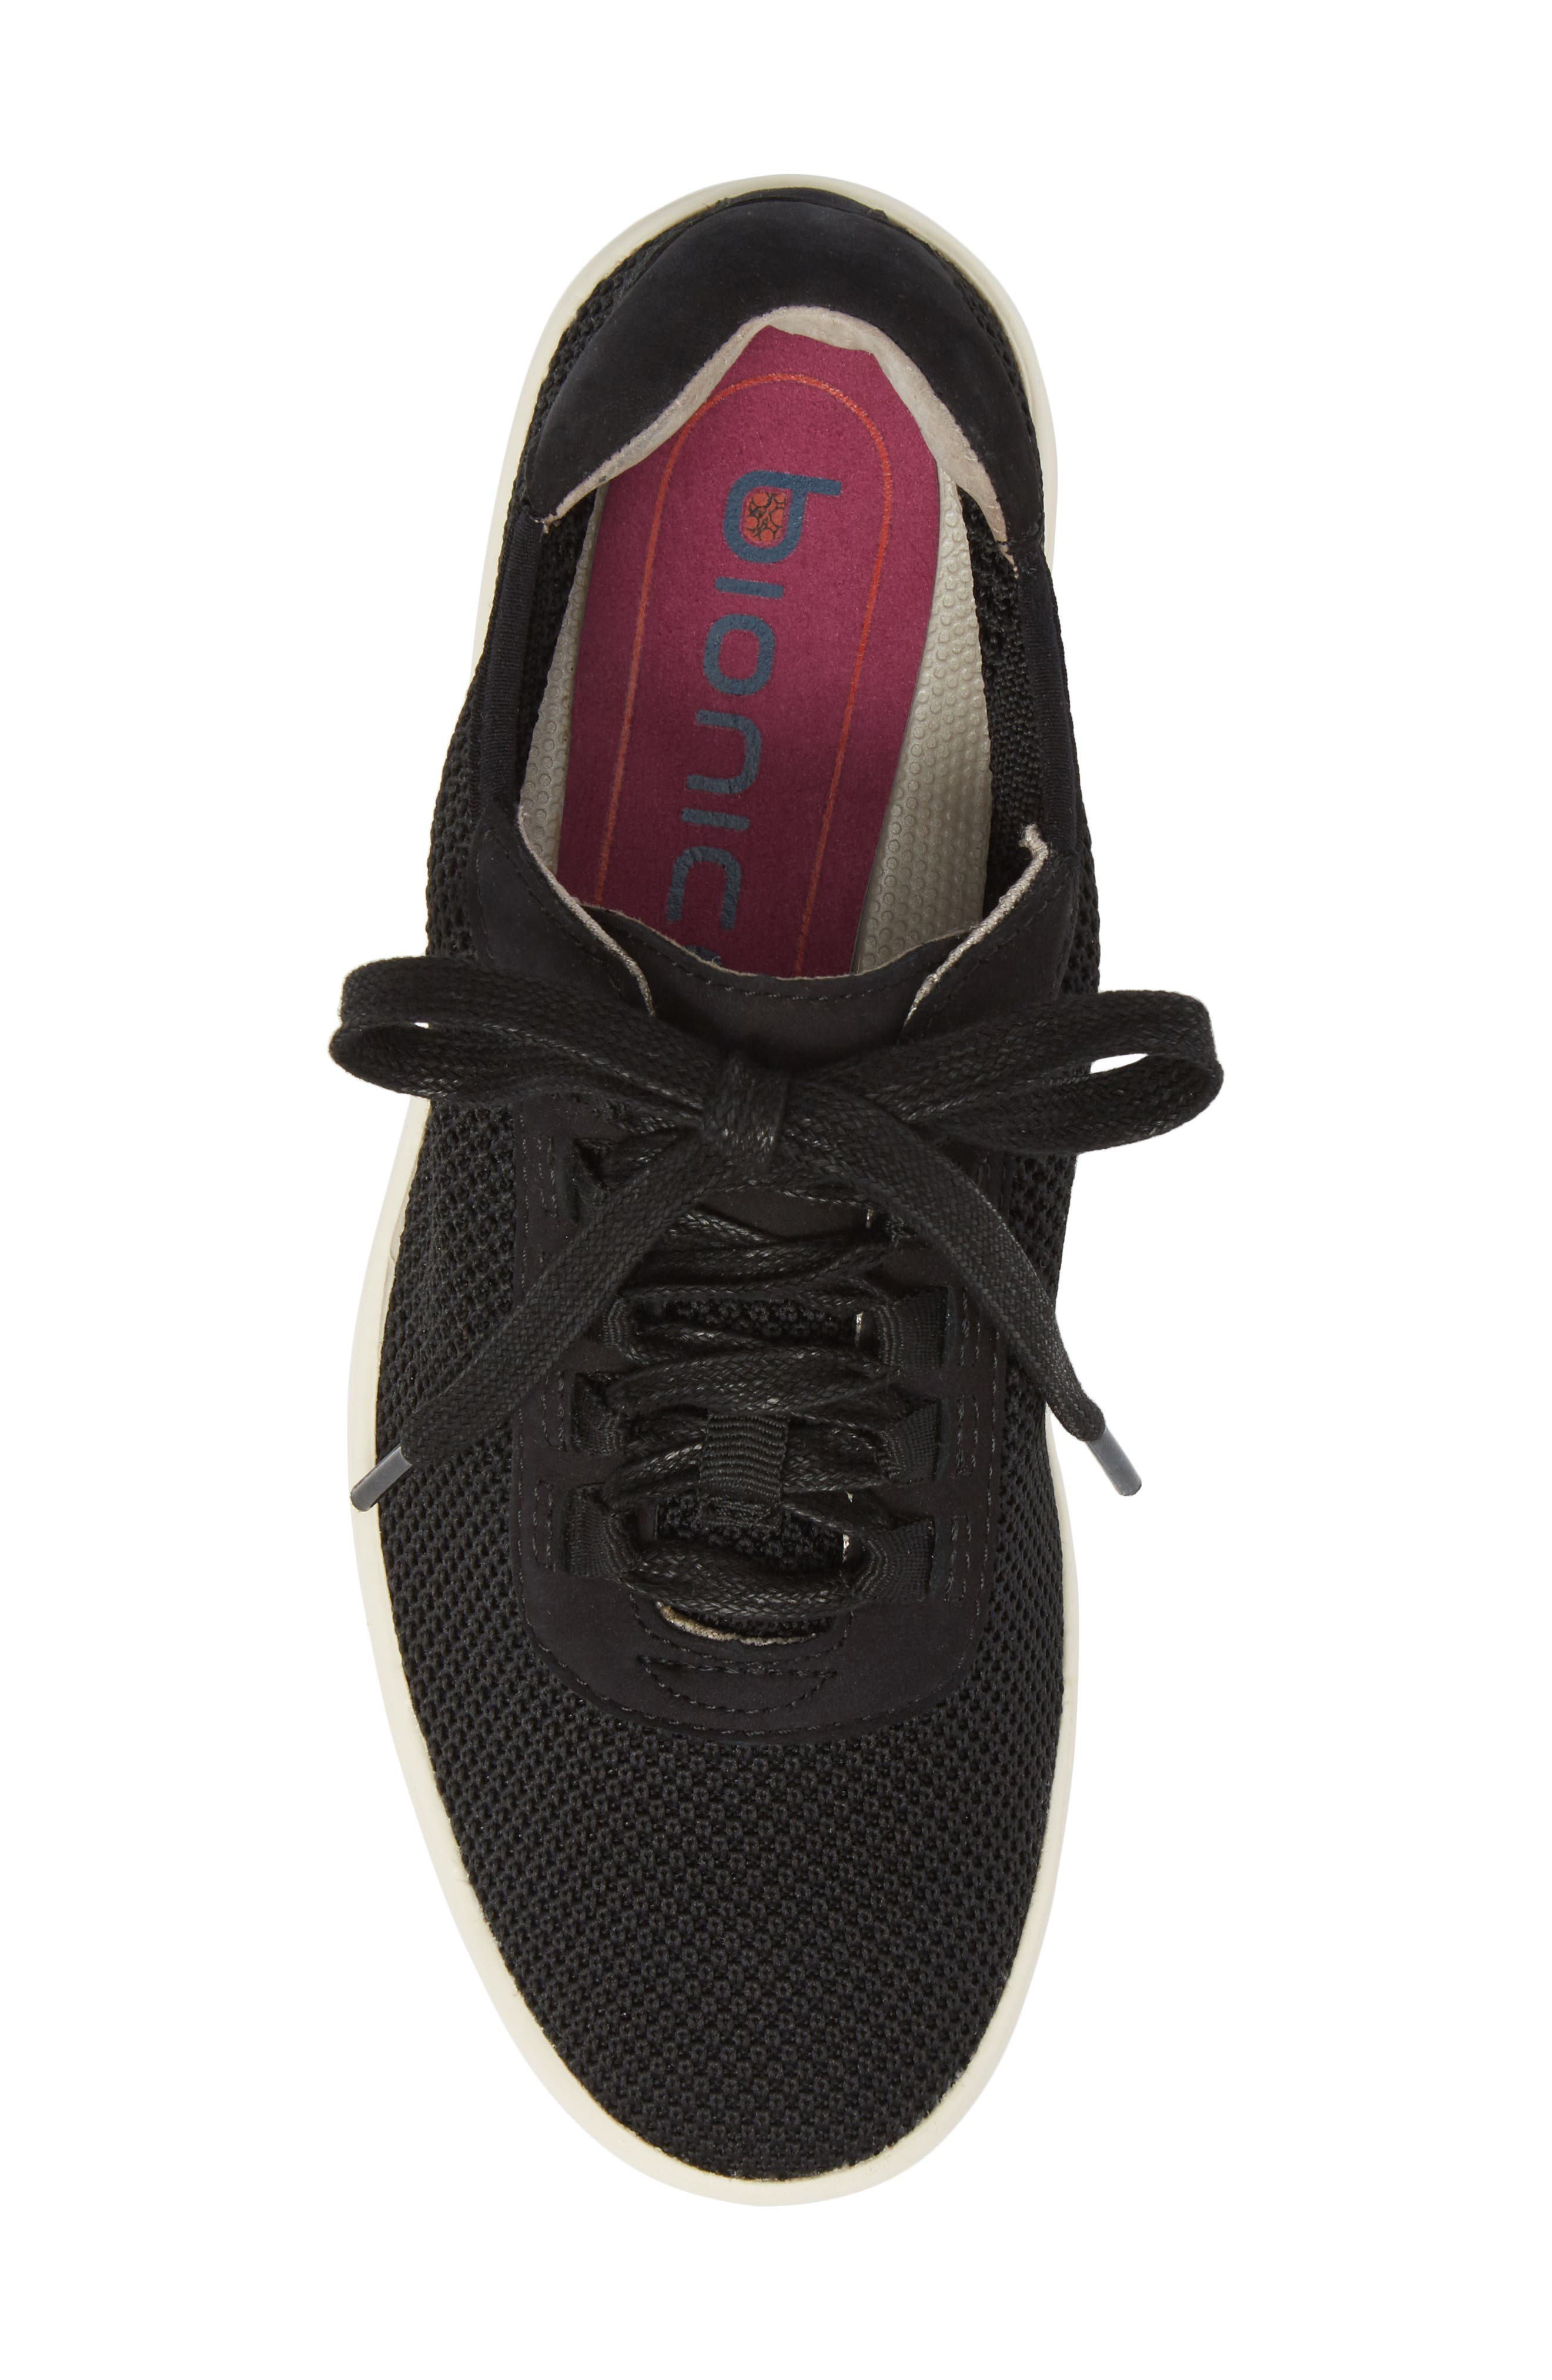 Malibu Sneaker,                             Alternate thumbnail 5, color,                             BLACK KNIT FABRIC